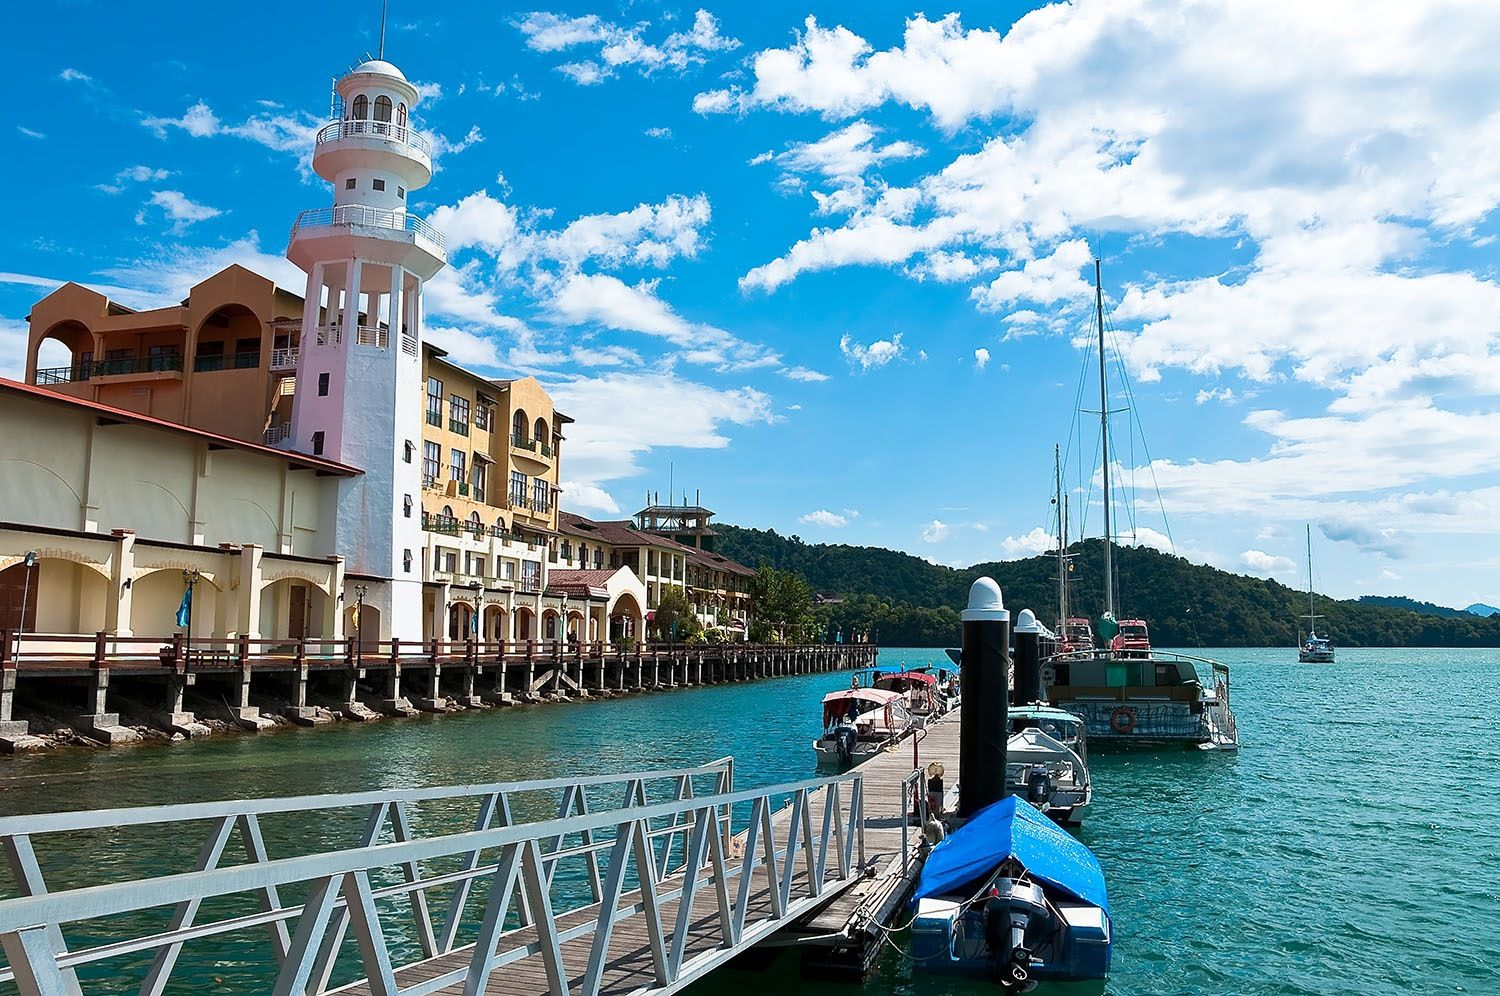 Holiday package deals 6d5n costa cruise to penang for Terrace 9 classic penang